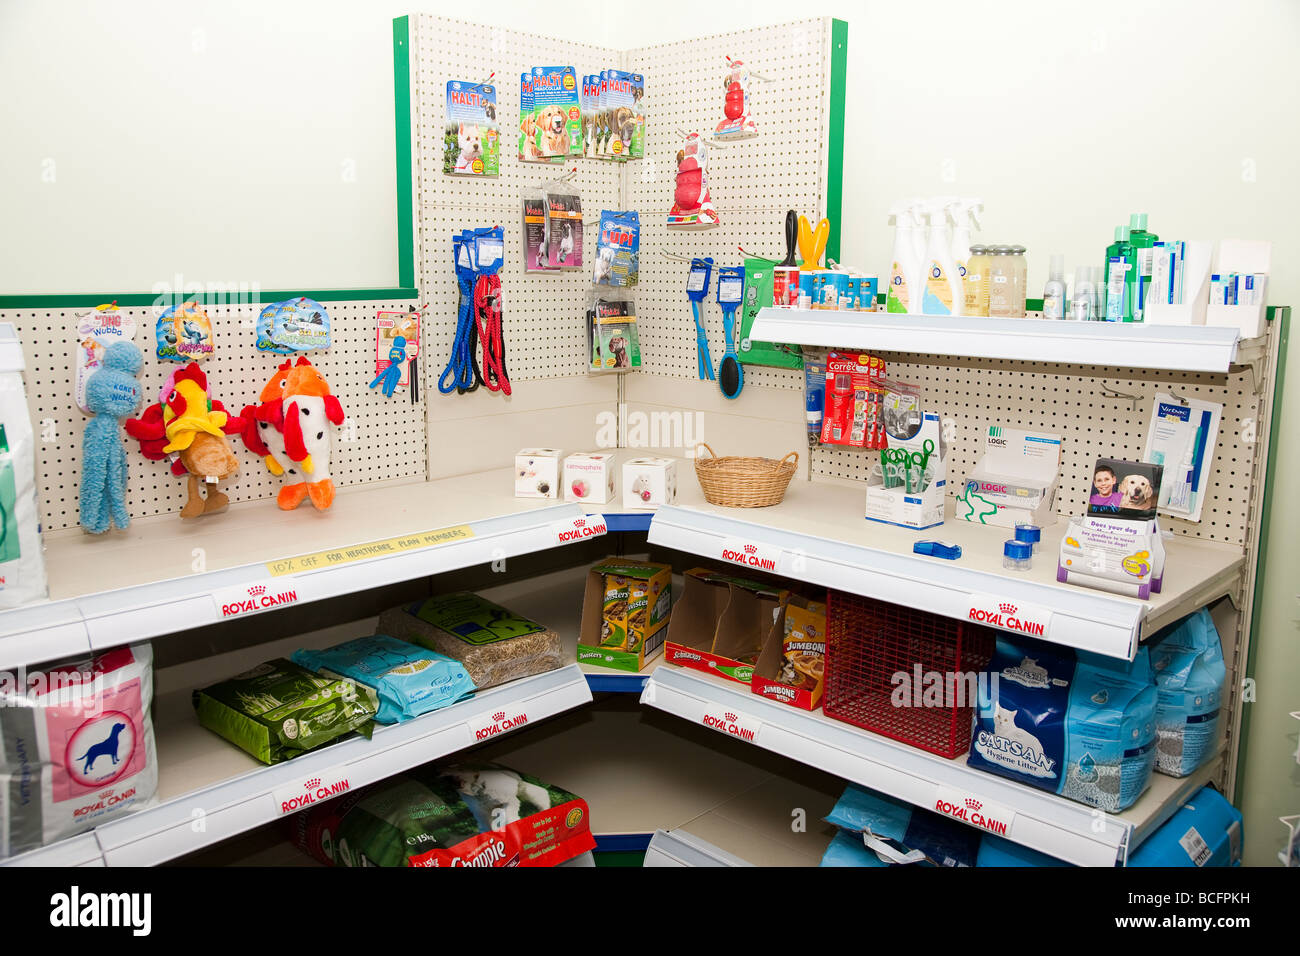 Commercial Display in Veterinary Surgery - Stock Image